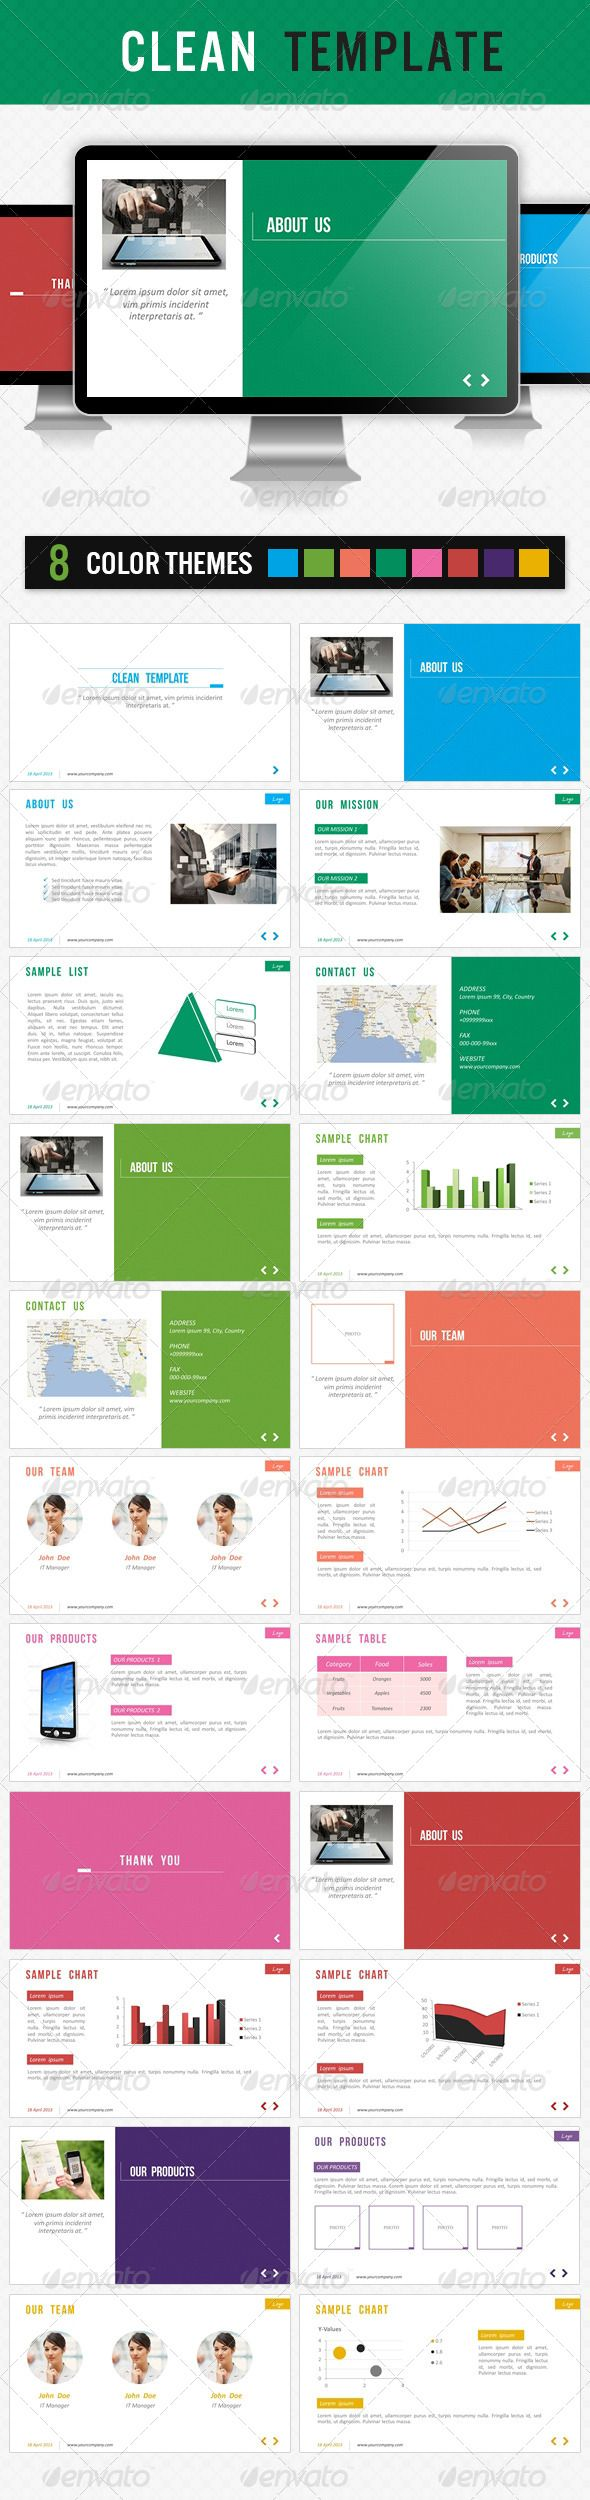 Clean Template  #GraphicRiver        Clean Template The pack includes:  PPTX file for Microsoft Office Powerpoint 2007/2010   PNG images with transparency  JPG files   8 color themes  Animated effects  Slide navigation in bottom (Prev/Next button) Images that i used:  bit.ly/101Qc4K  bit.ly/XT97oc  bit.ly/XIro5j  bit.ly/XT9grE  bit.ly/XIrv0F  bit.ly/115fXDL  bit.ly/17rA55f 	 Note: Photos used in the content area not included in the main file and they are replaced by image placeholders…